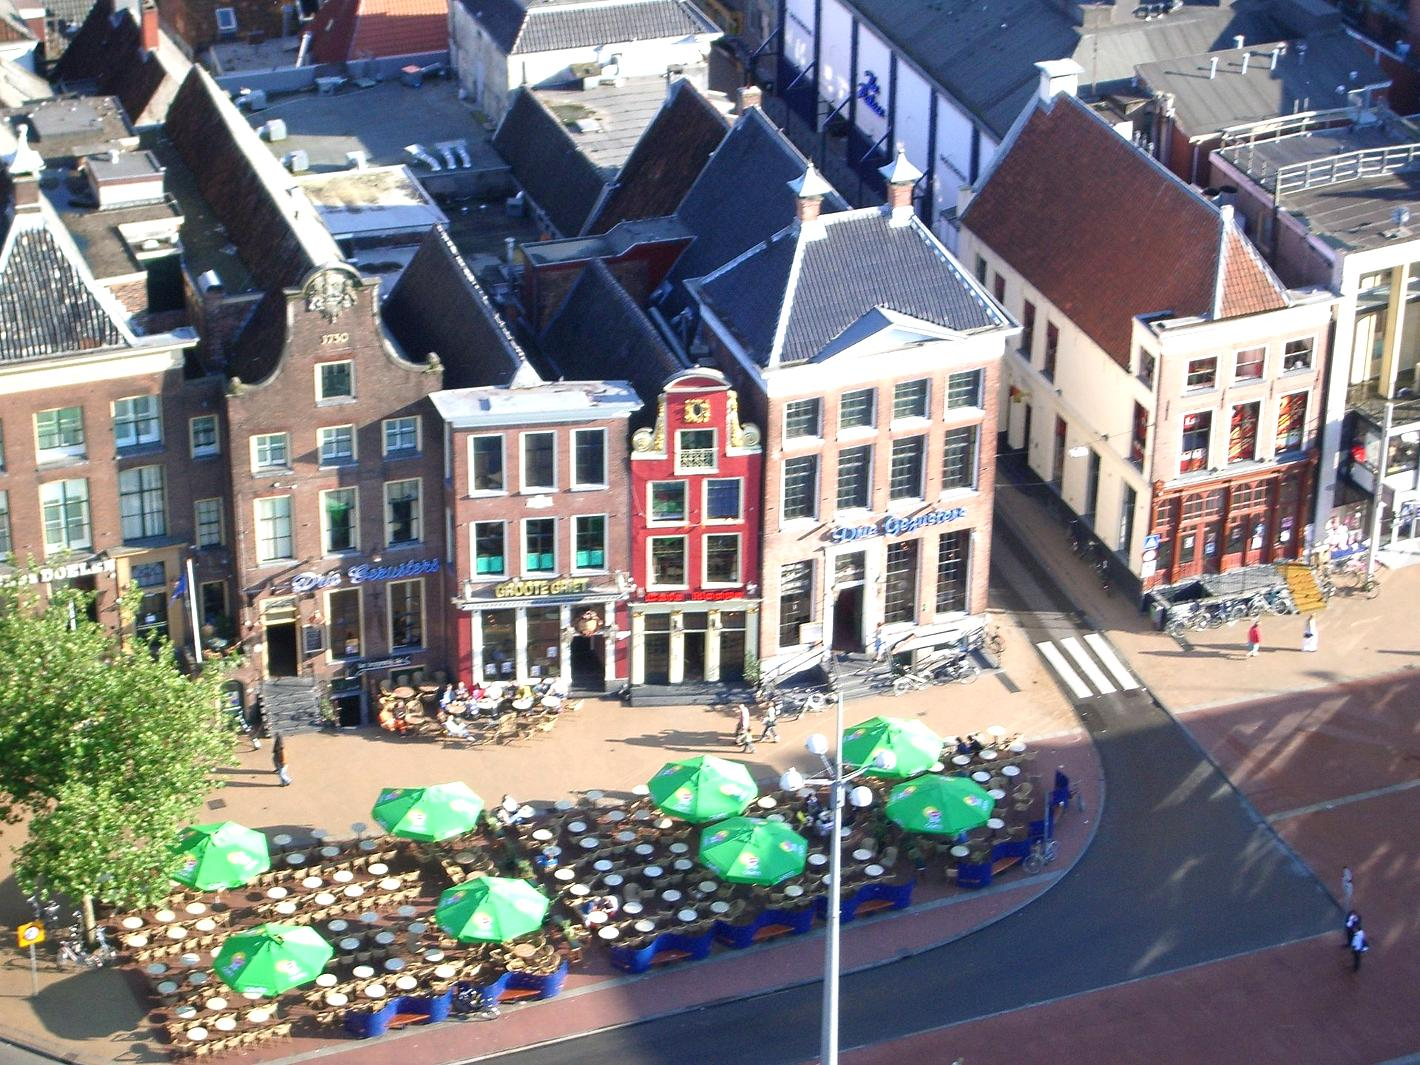 Photo Grote Markt in Groningen, View, Coffee, Drink, Neighborhood - #3